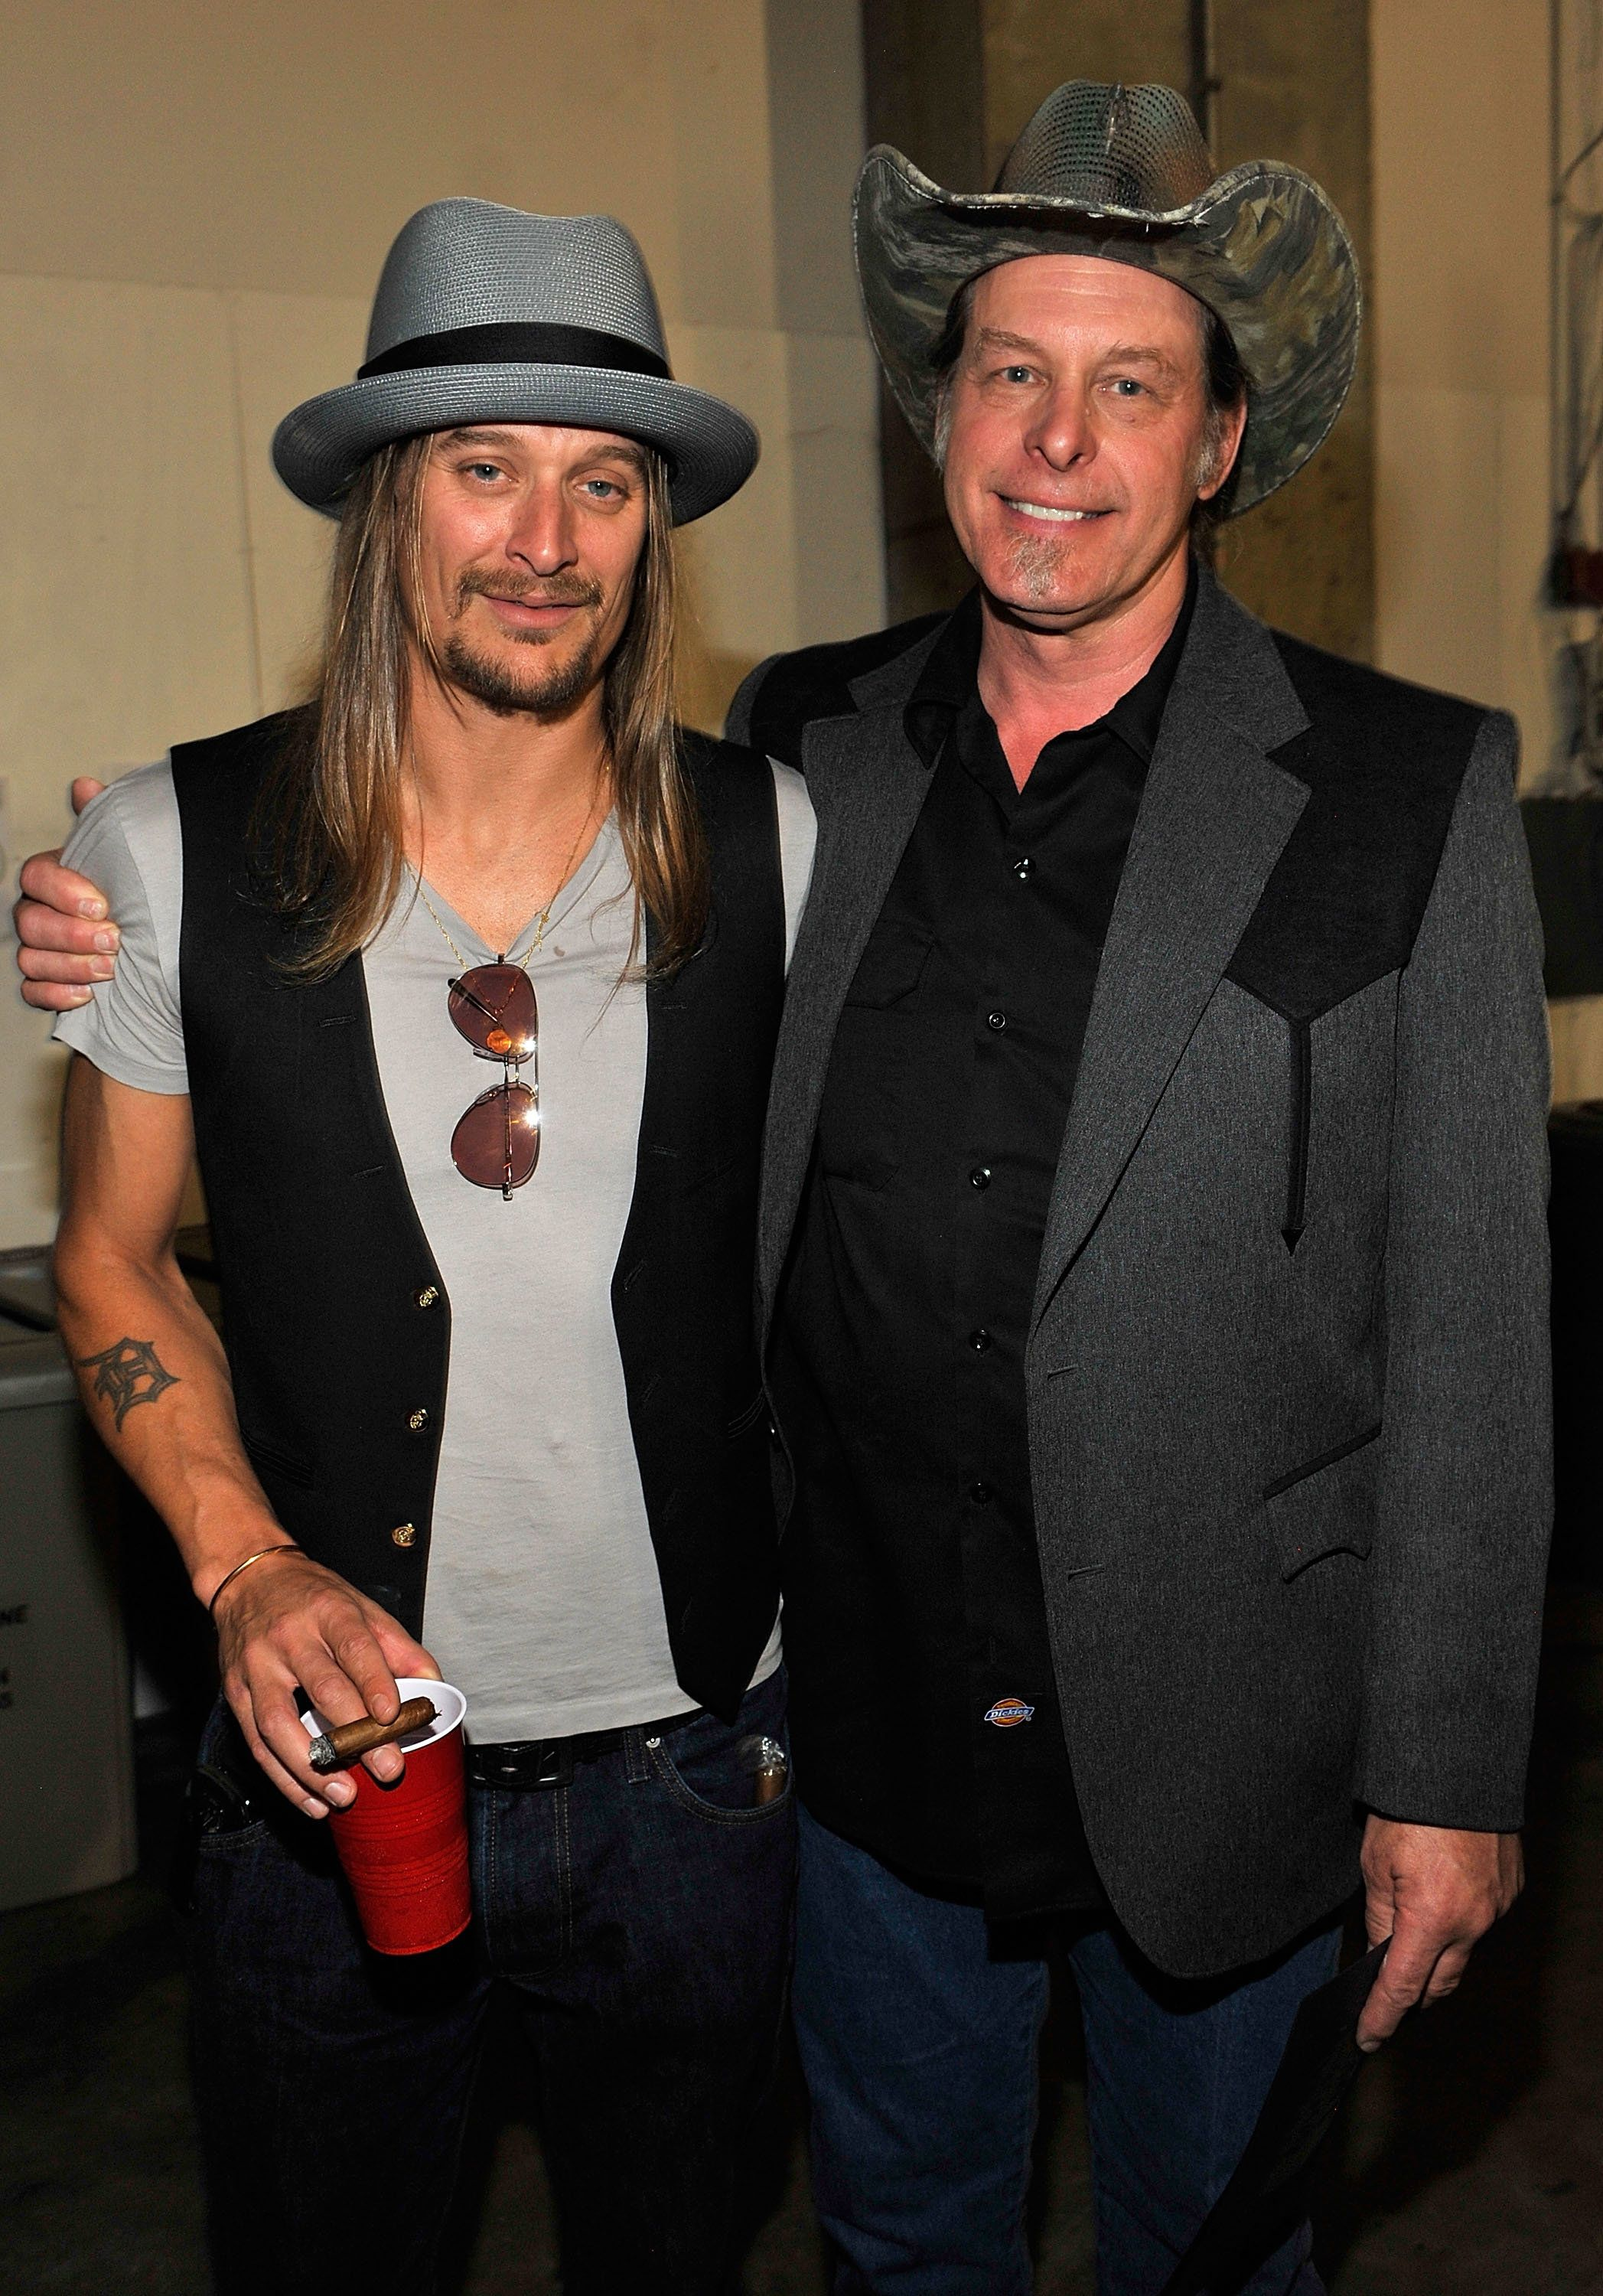 NASHVILLE, TN - JUNE 16:  Kid Rock and Ted Nugent attend the 2009 CMT Music Awards at the Sommet Center on June 16, 2009 in Nashville, Tennessee.  (Photo by Kevin Mazur/WireImage)